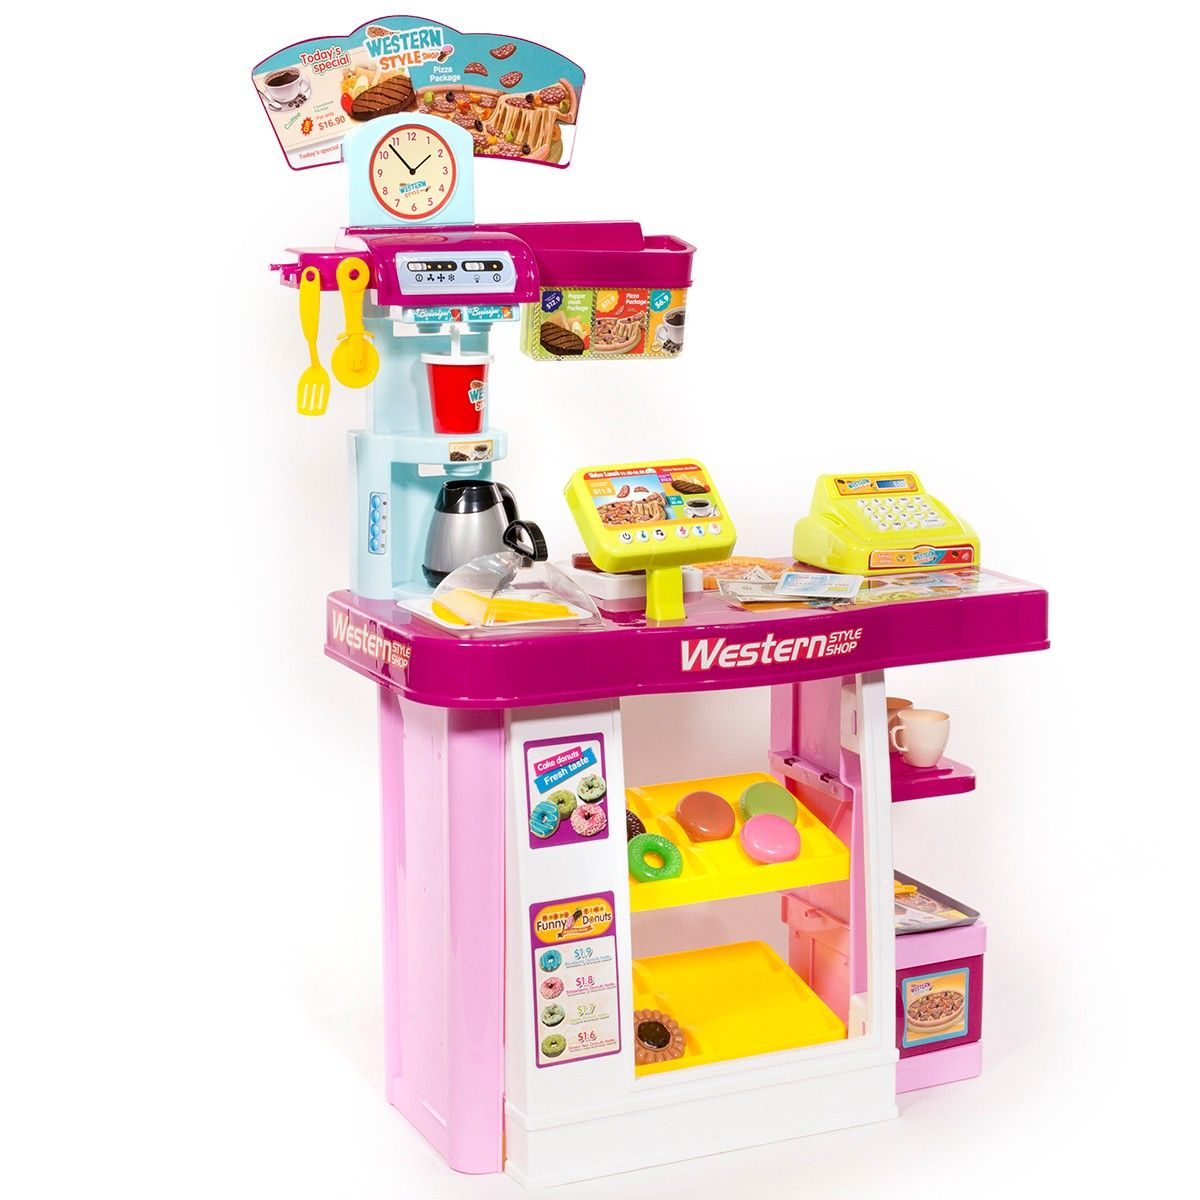 Toys Play kitchen sets, Play food, Kitchen tools